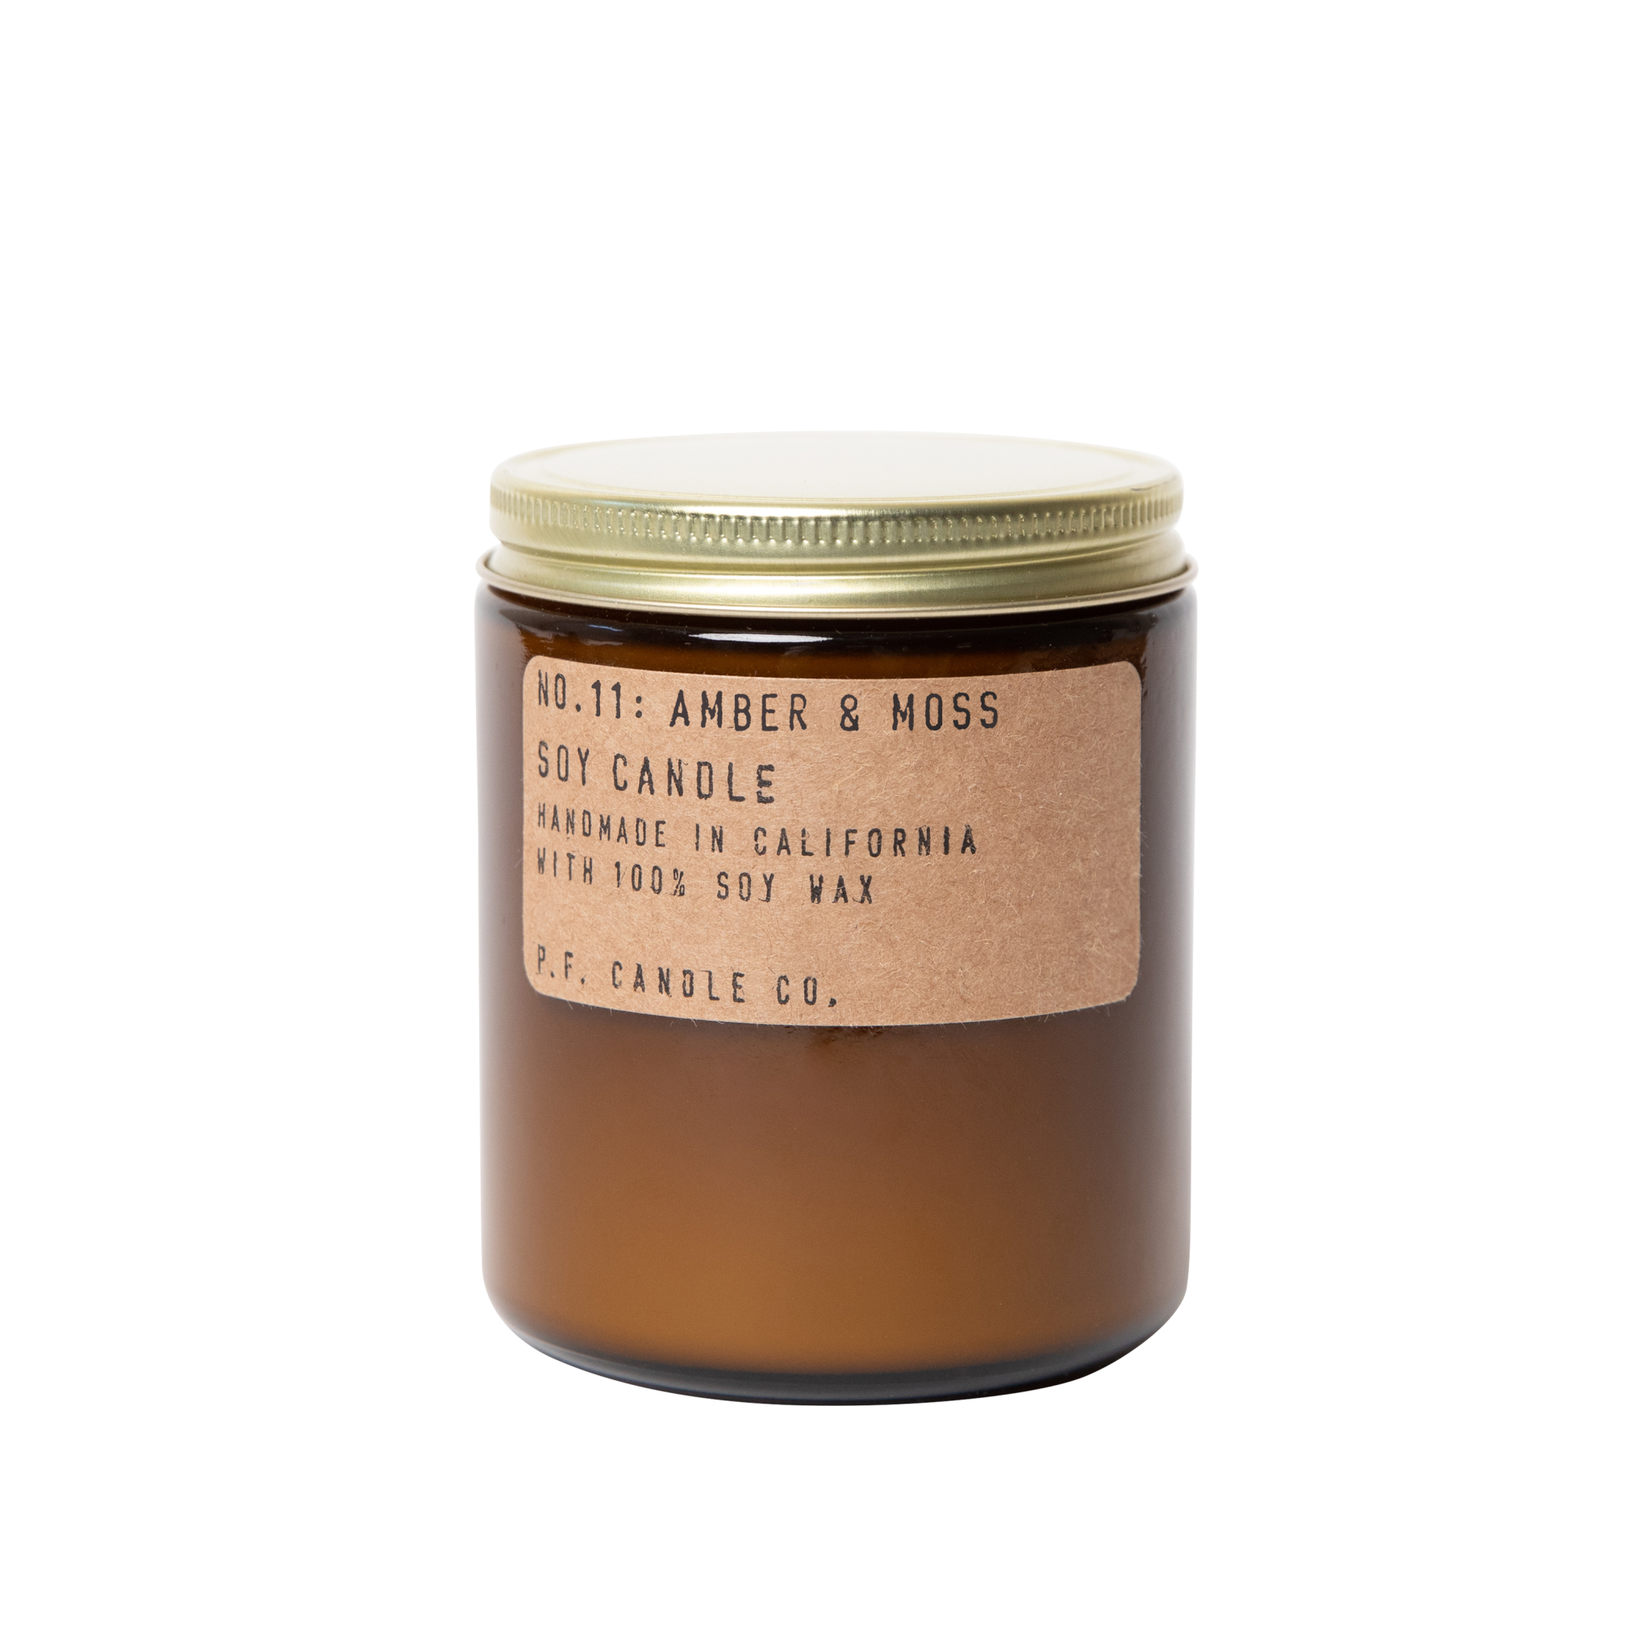 P.F. Candle Co. P.F. Soy Candle 7.2oz Amber & Moss